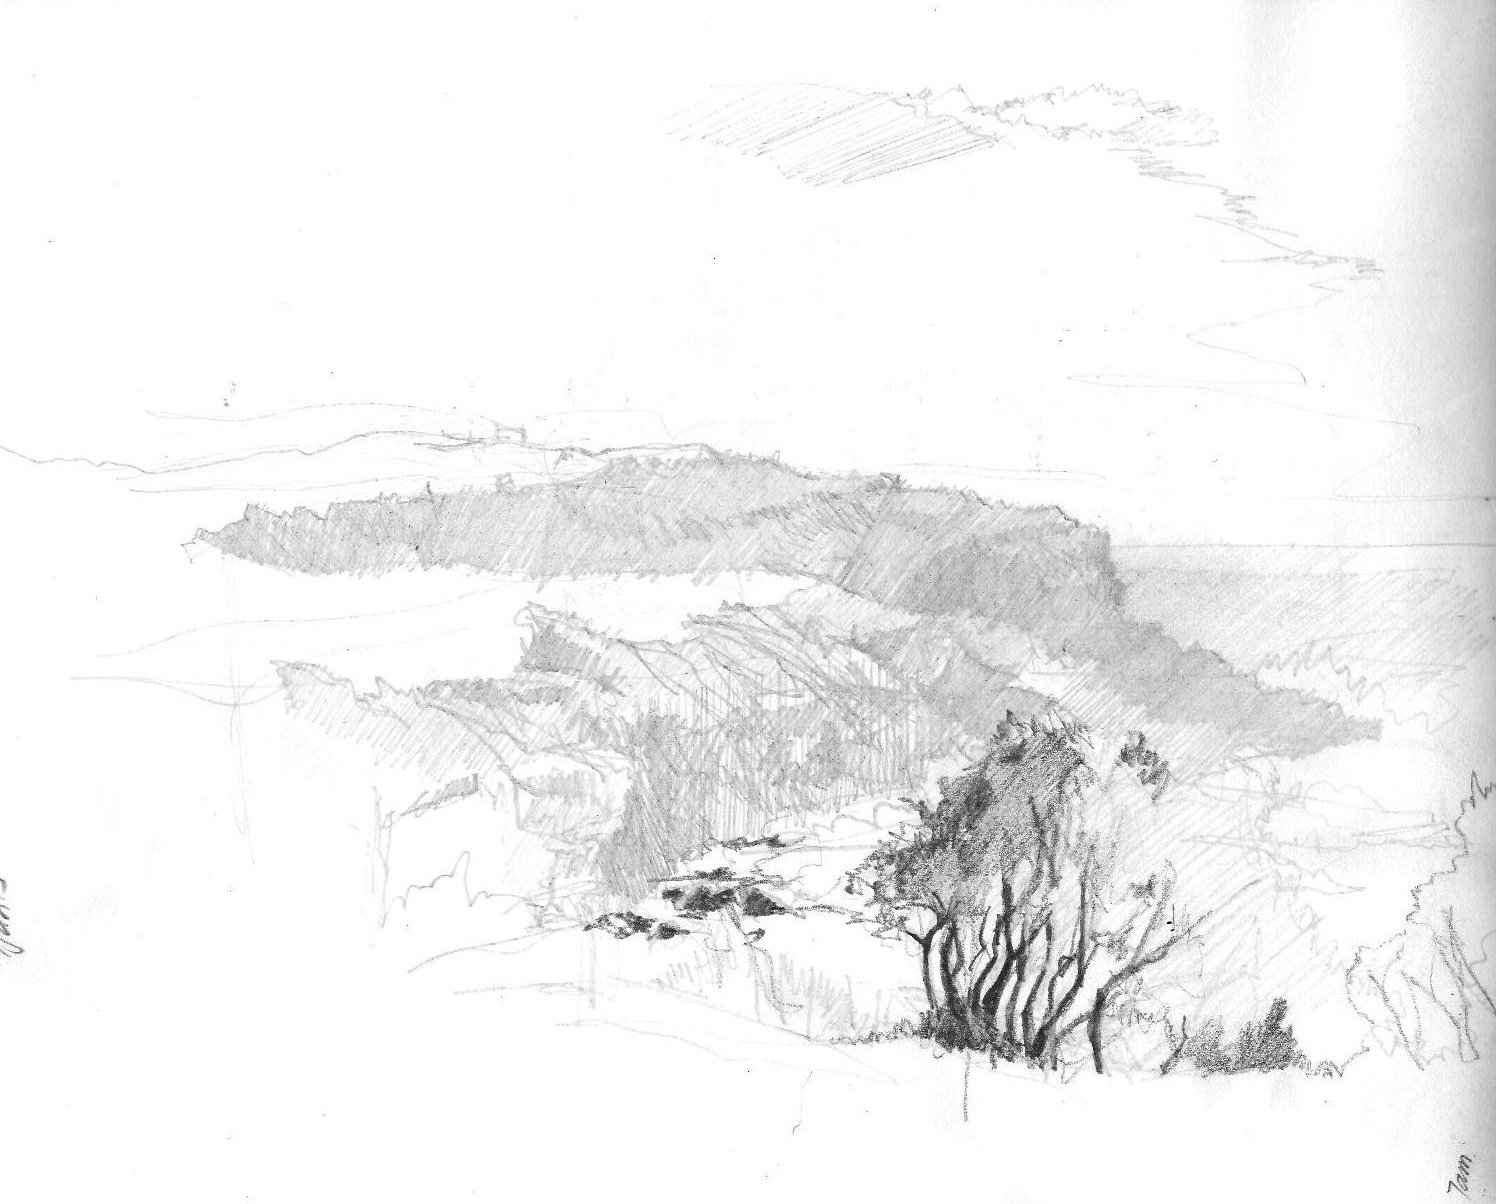 1496x1204 Perspective In Landscape Drawing Little Bay Nsw 2036 Gasp!